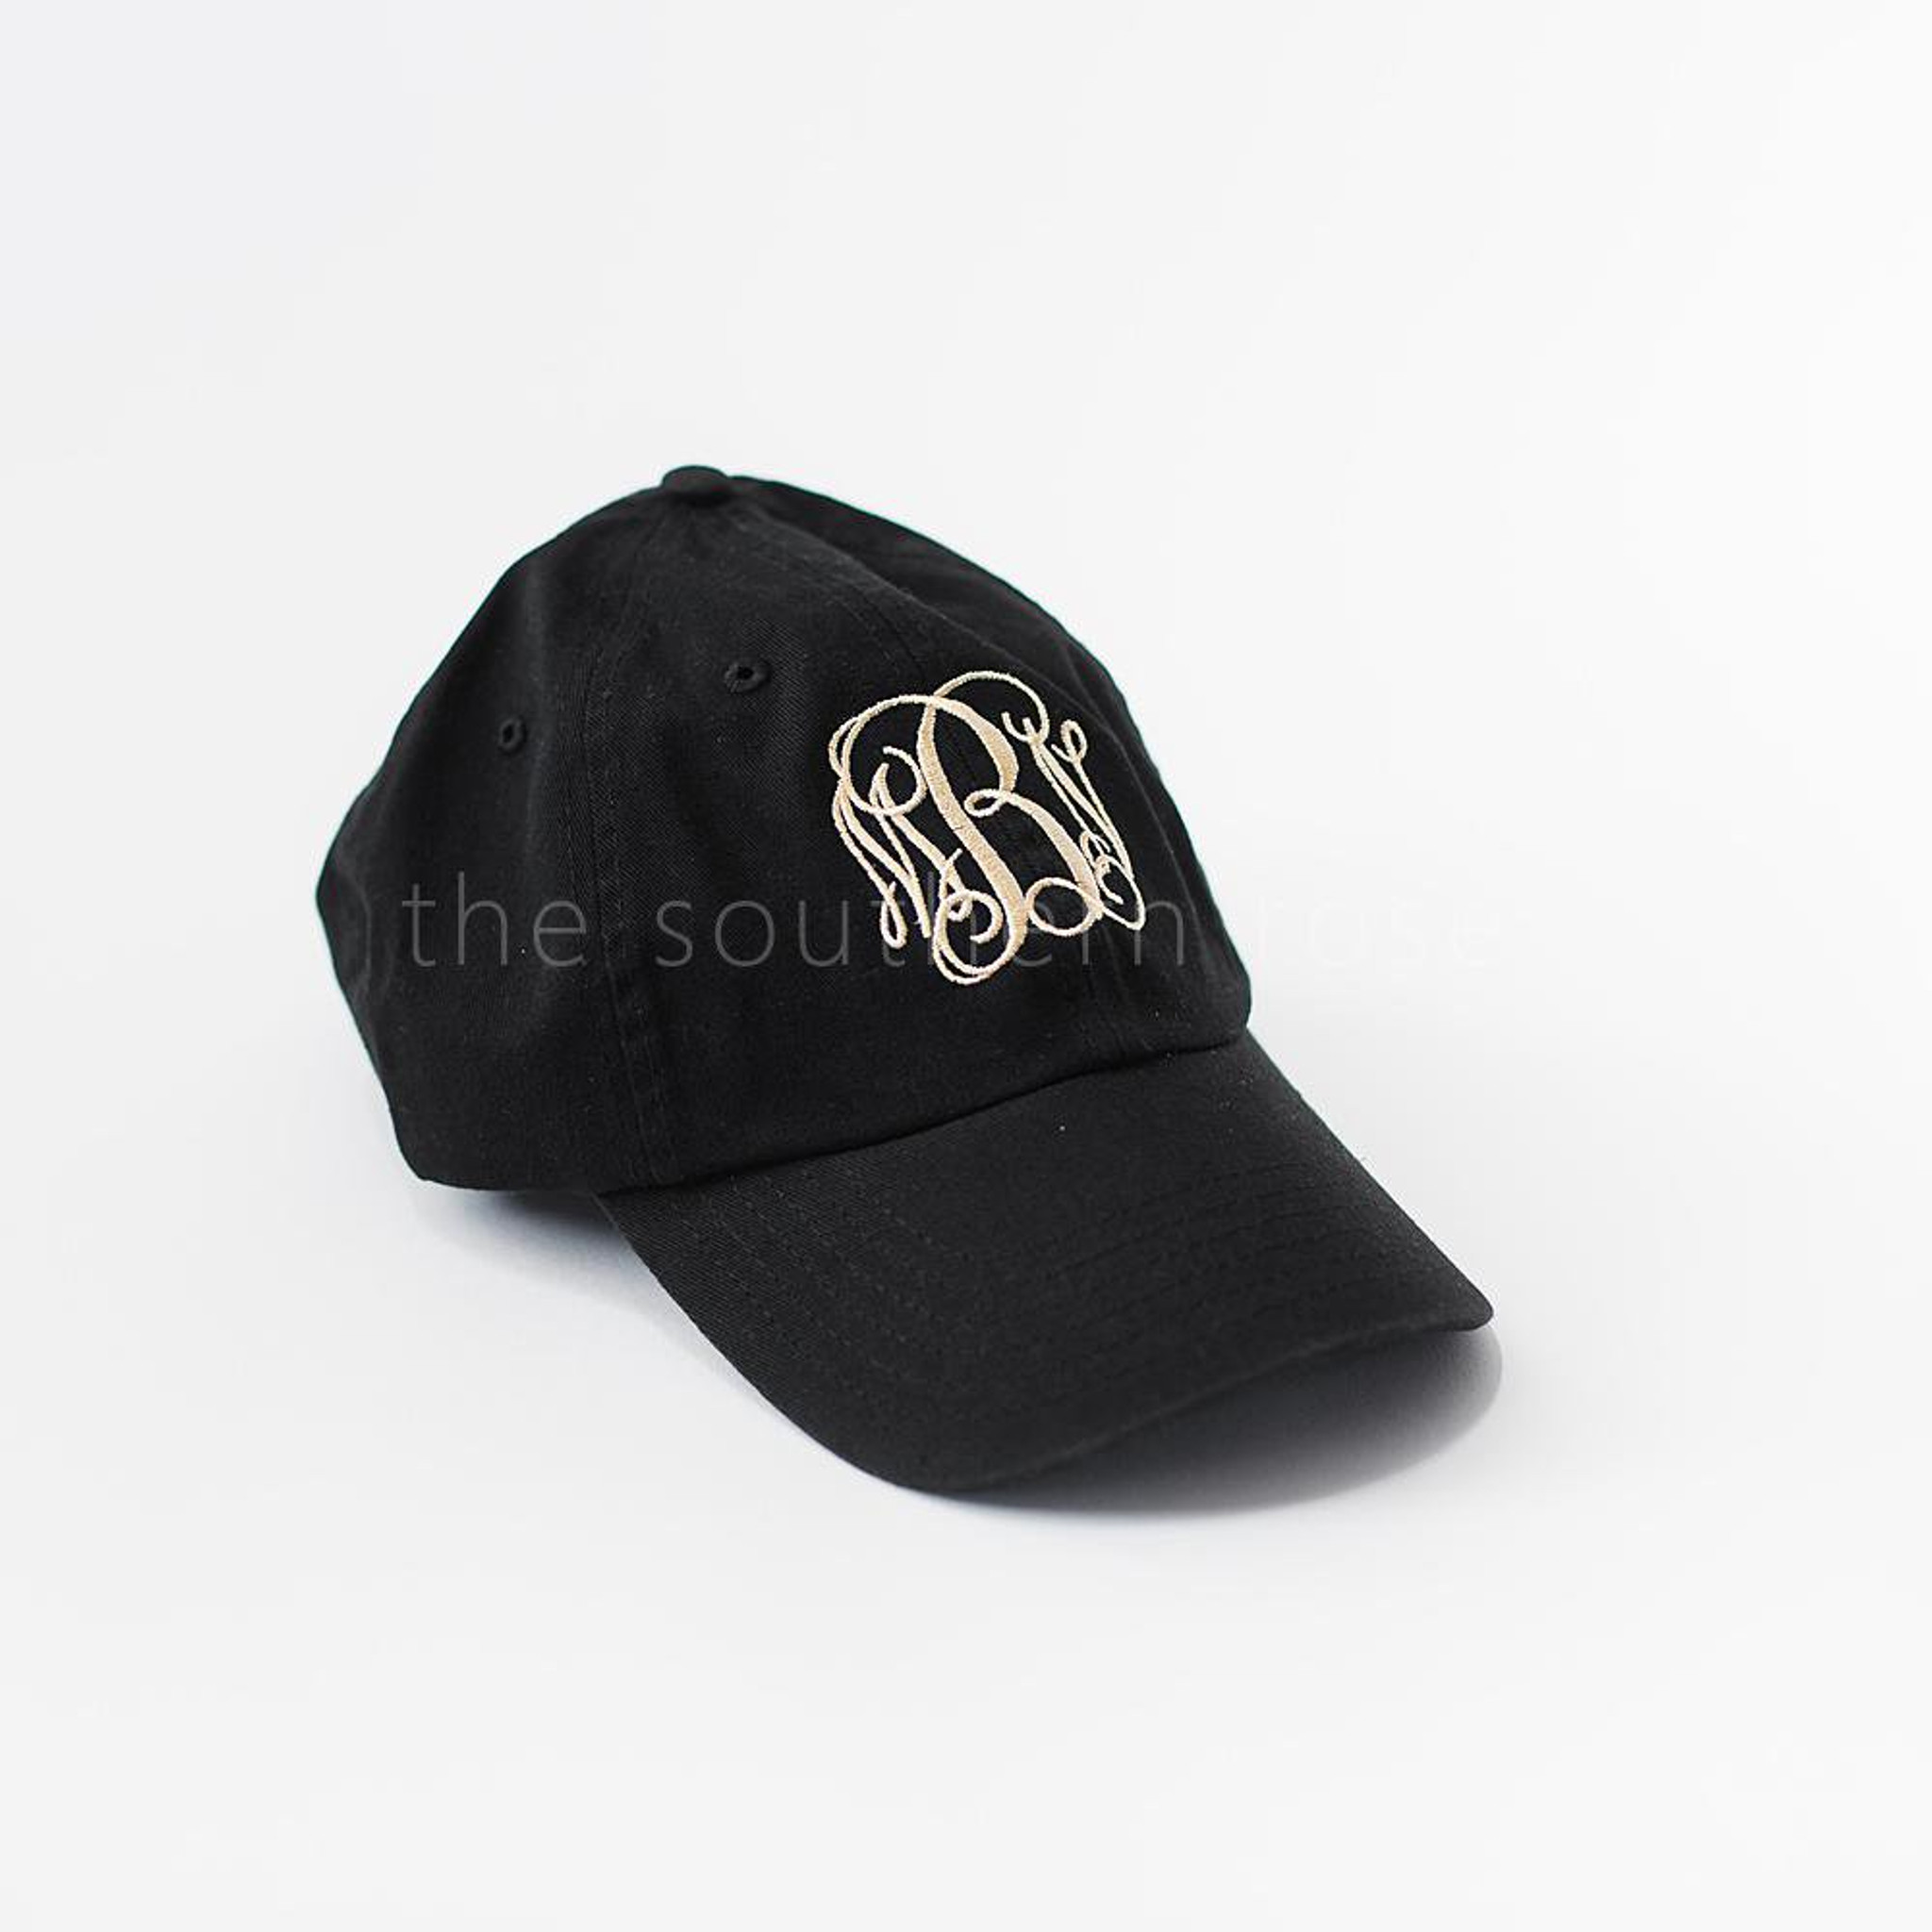 A black baseball hat with white monogrammed letters.